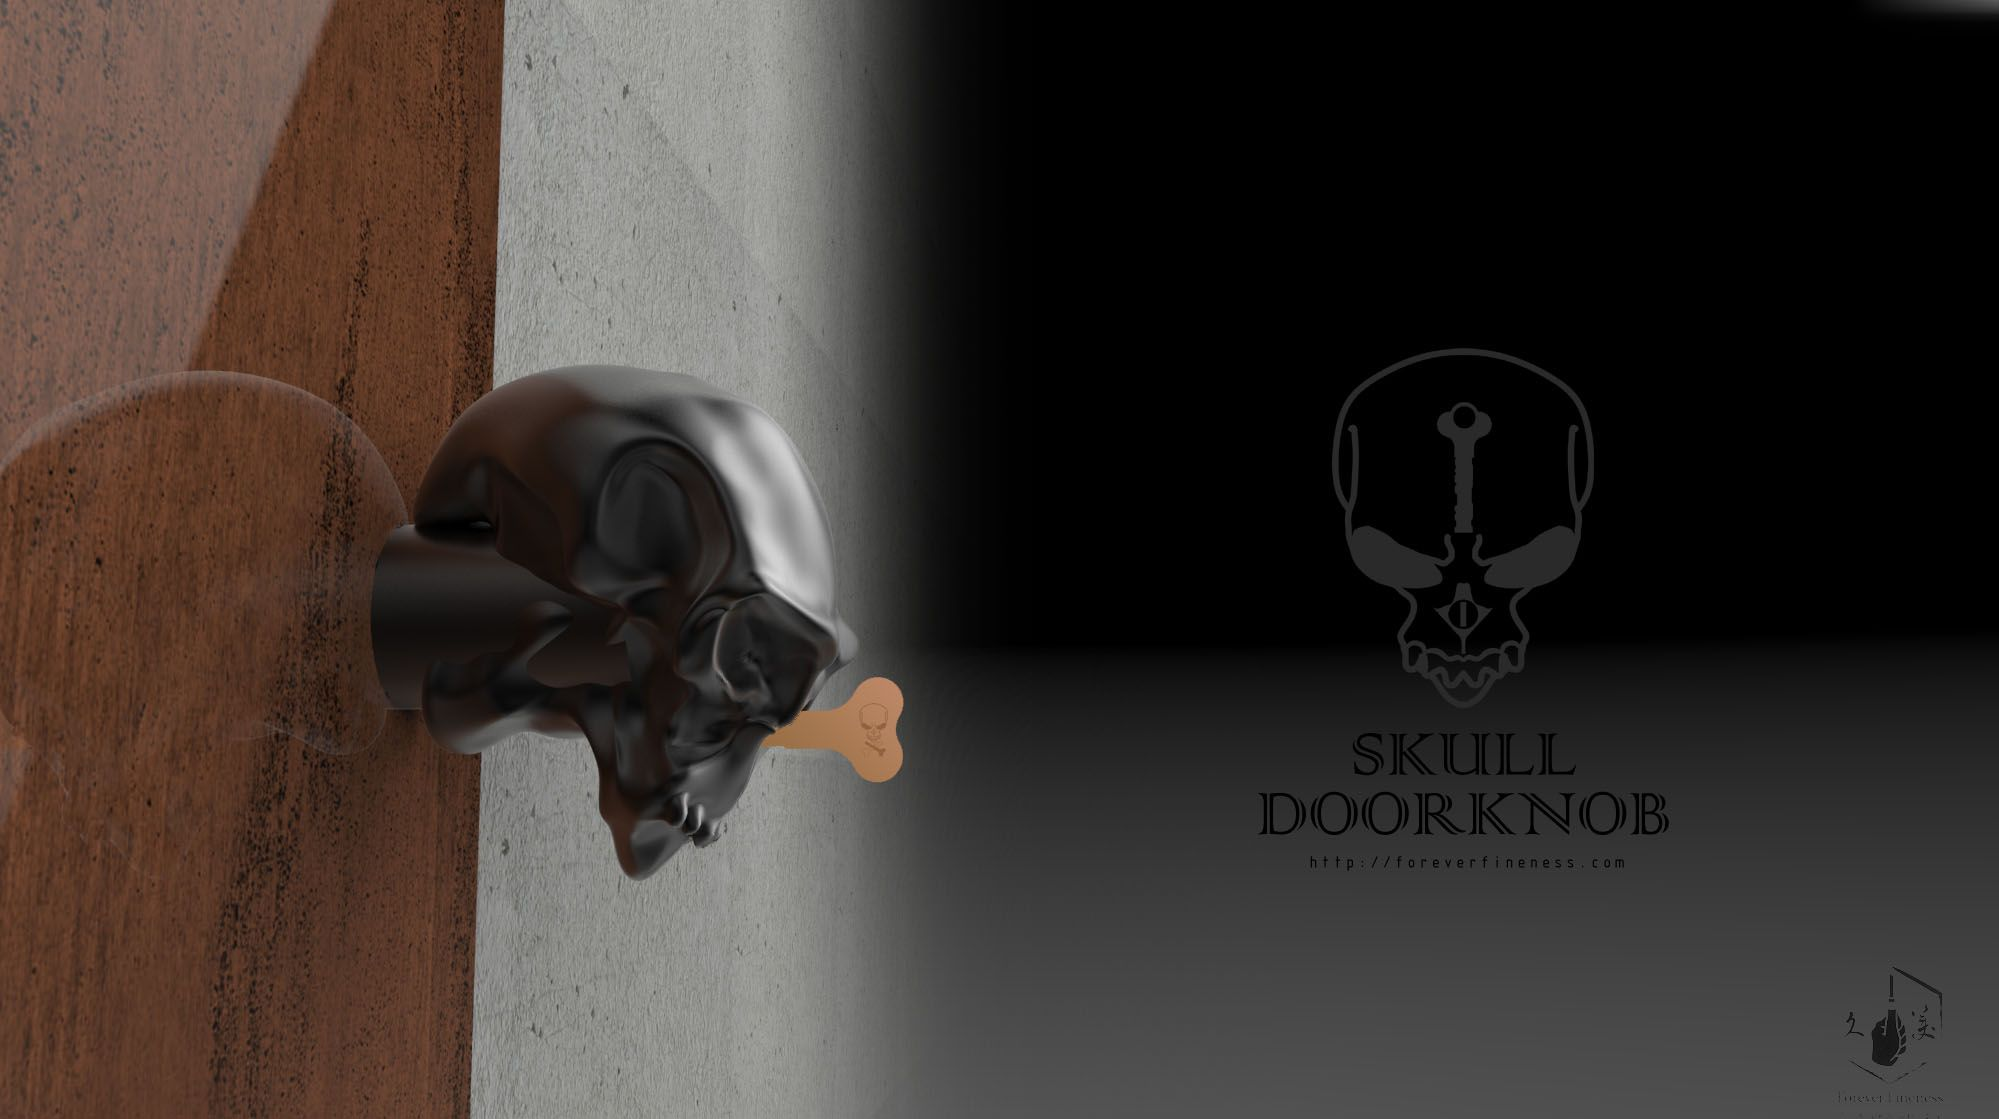 Skull doorknob i have no idea where i would put this though ohm